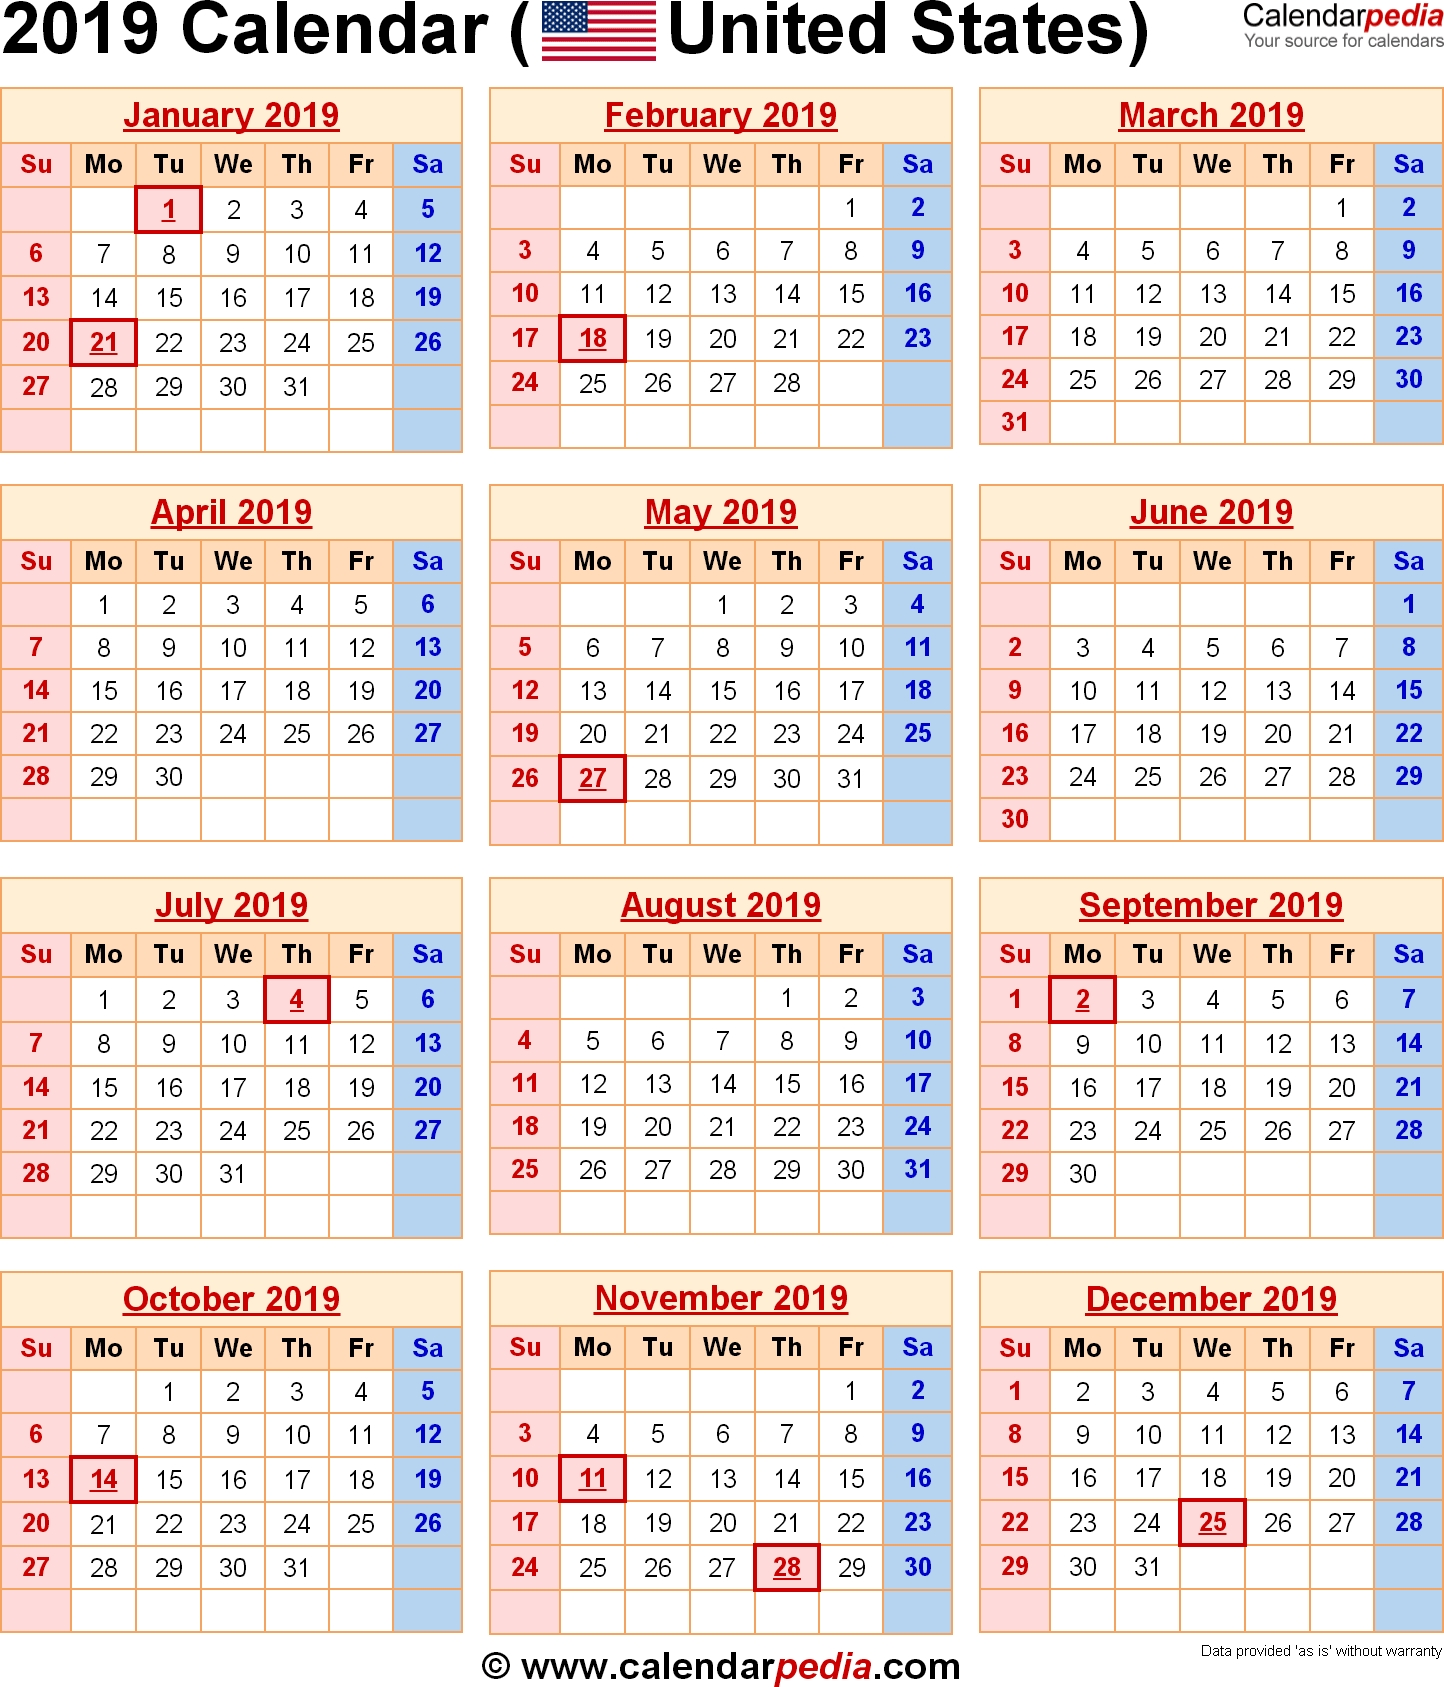 2019 Calendar With Federal Holidays